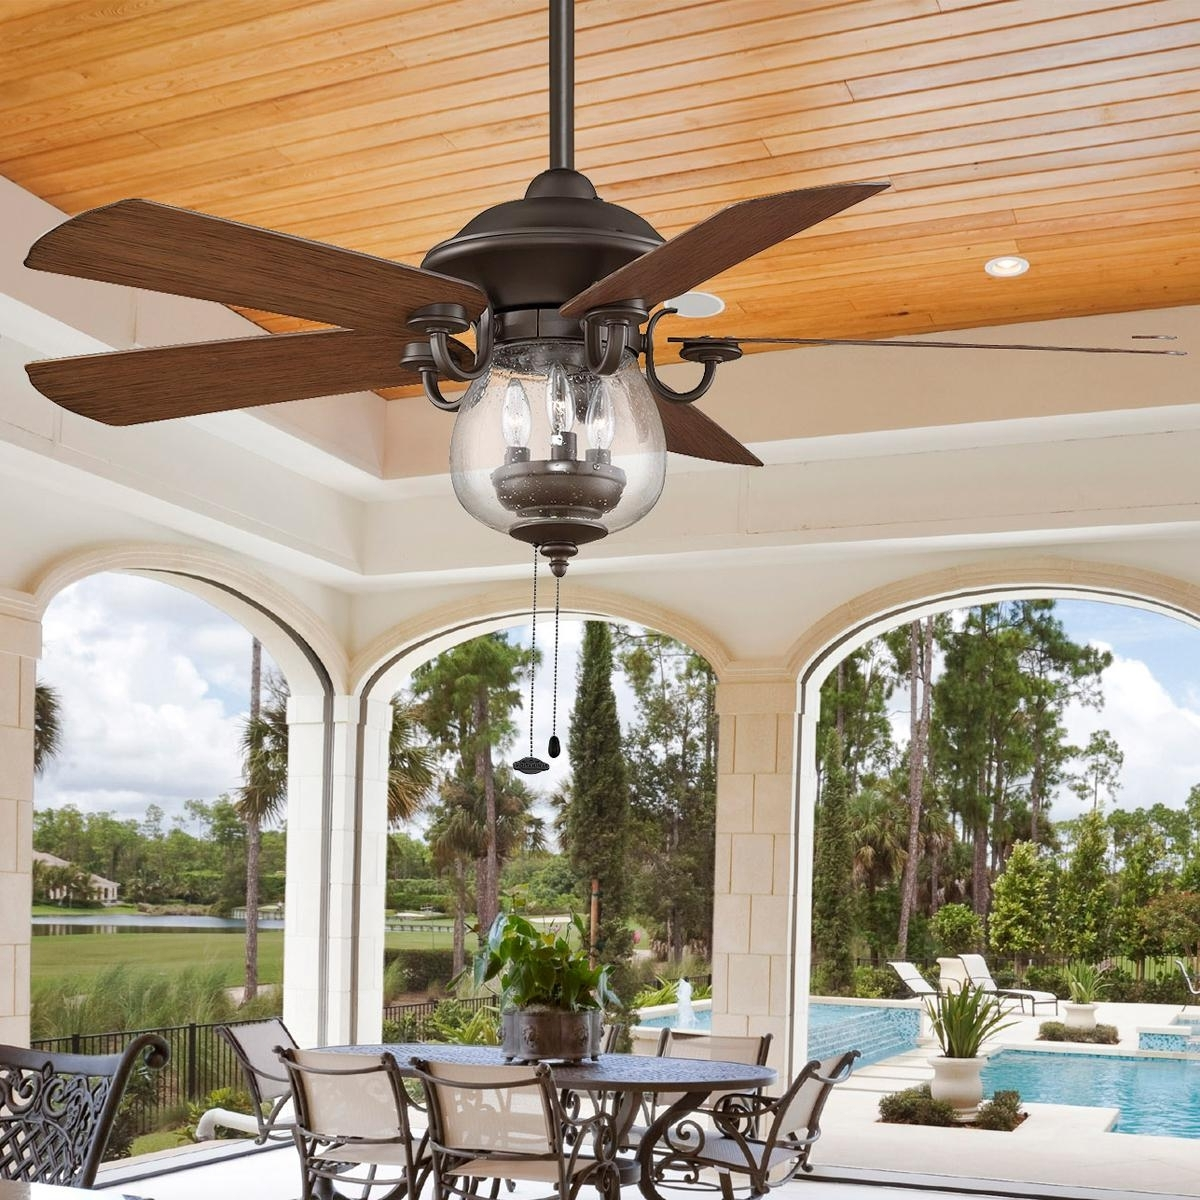 Outdoor Patio Ceiling Fans With Lights Intended For Most Up To Date Ceiling Fans Outdoor – Pixball (View 13 of 20)